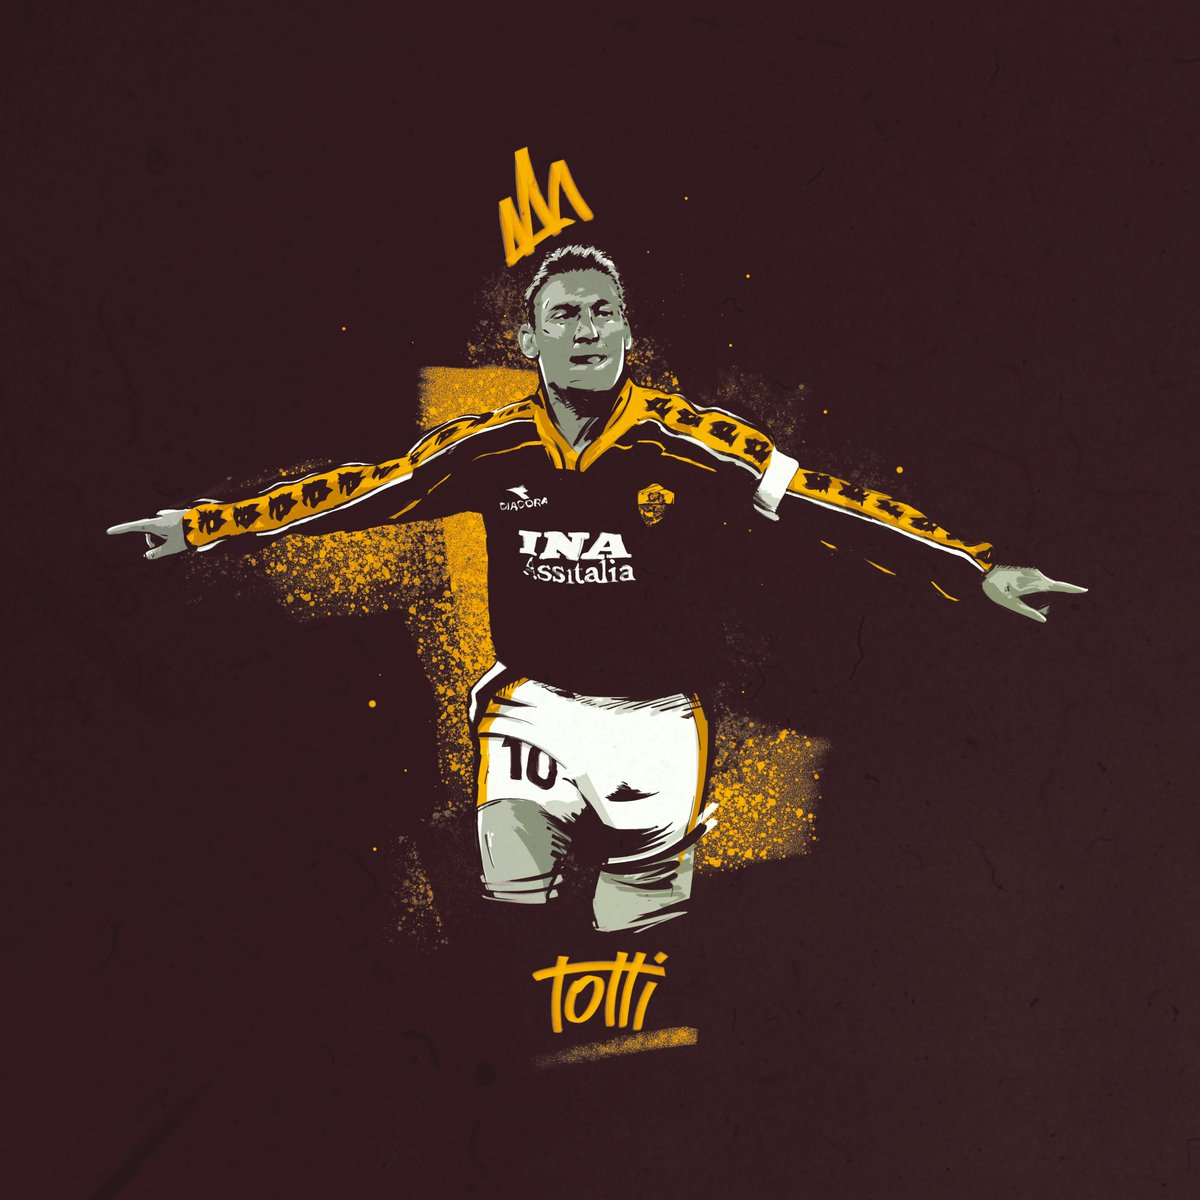 King of Rome!